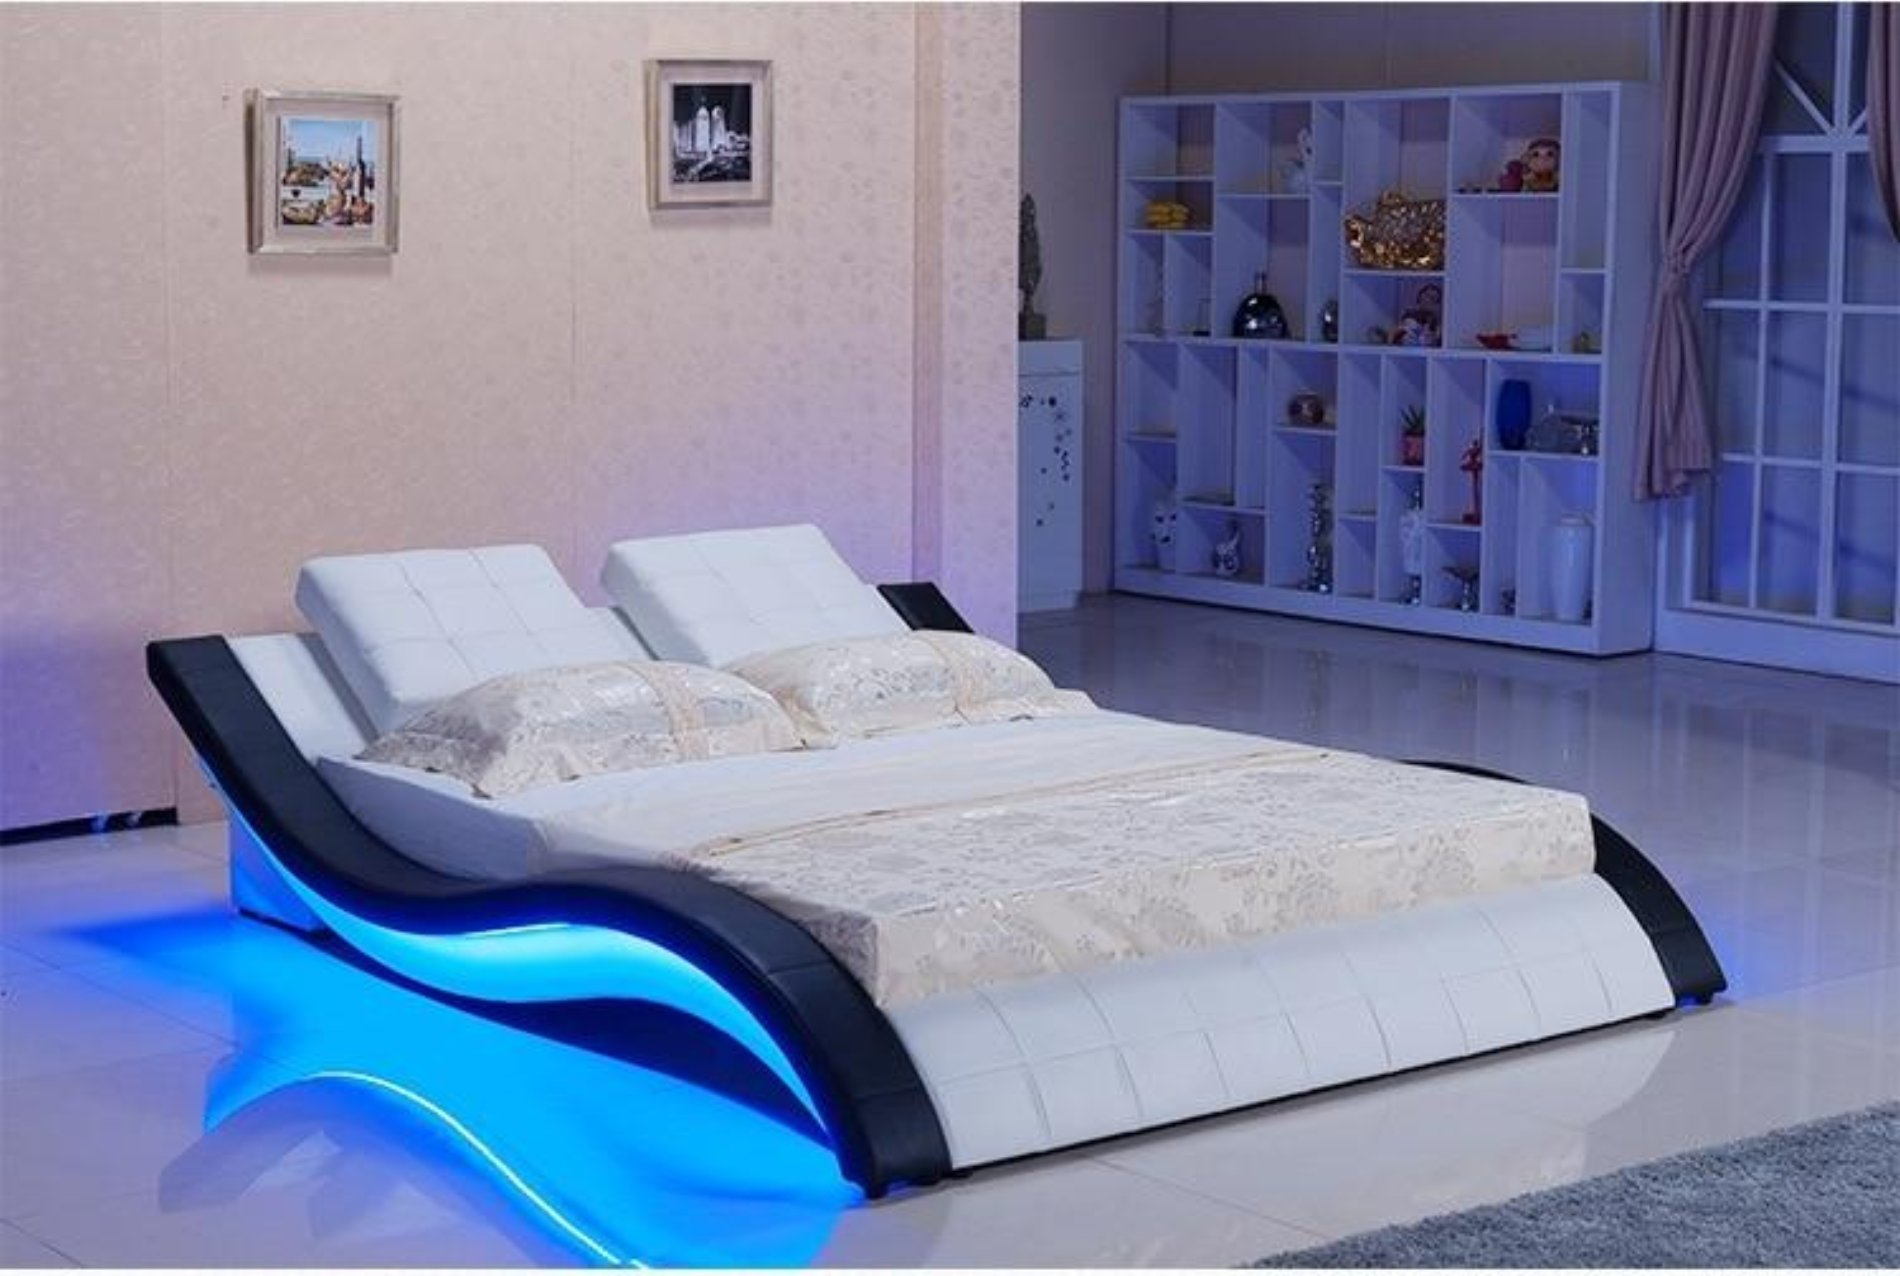 Image of Modern Led Bed With Sound System For Bedroom